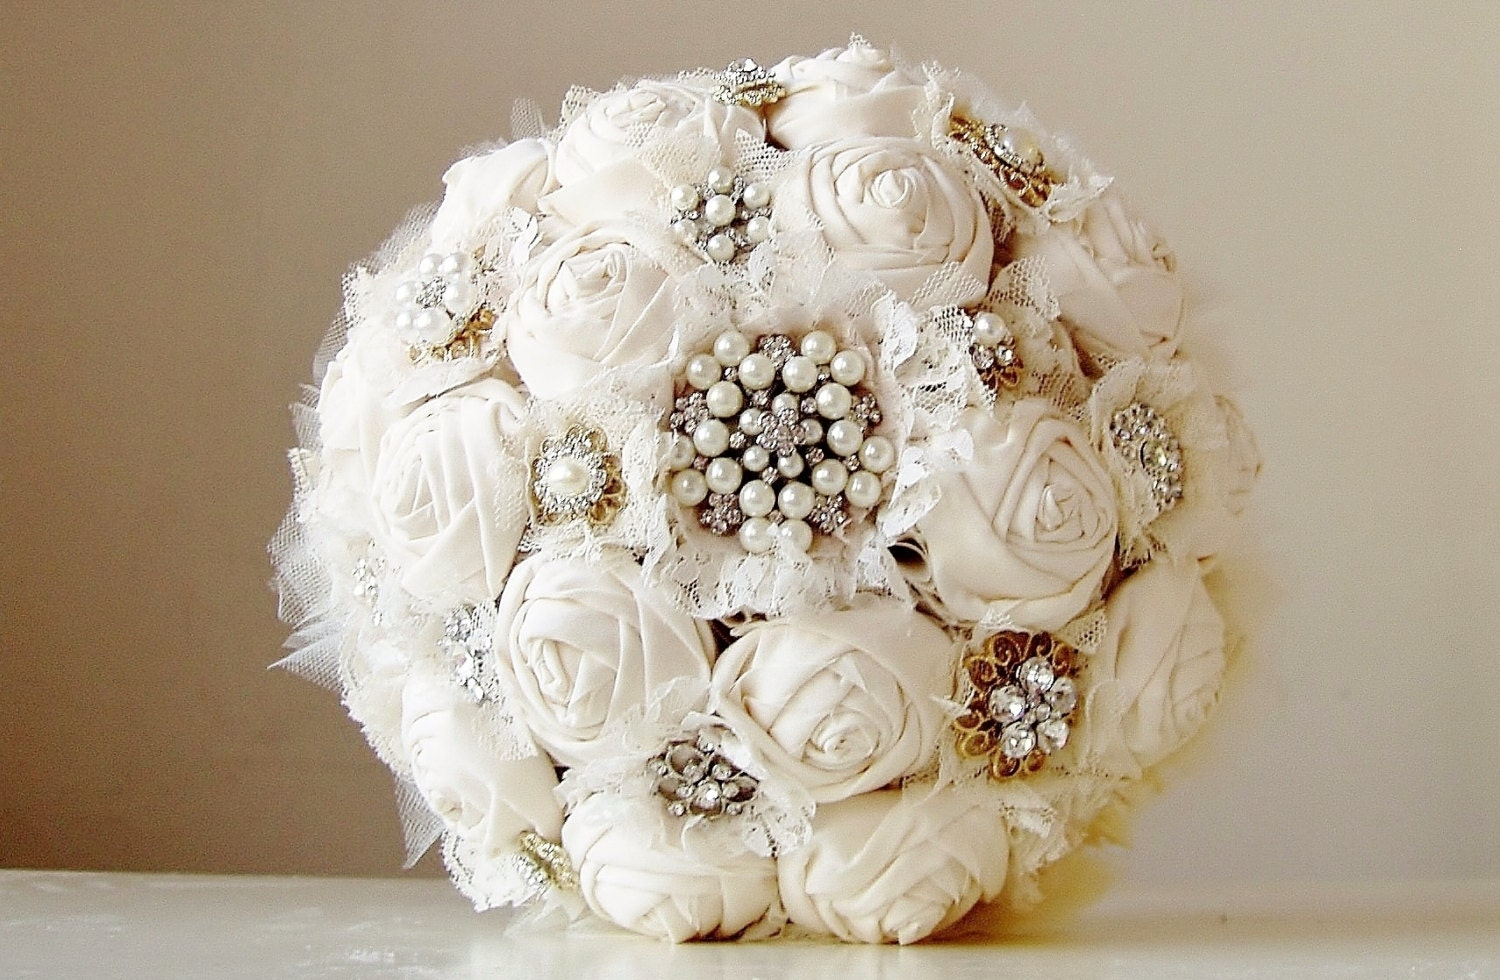 Fabric Flower Bouquet Vintage Style Wedding Bouquet Handmade Fabric Bridal Bouquet Brooch